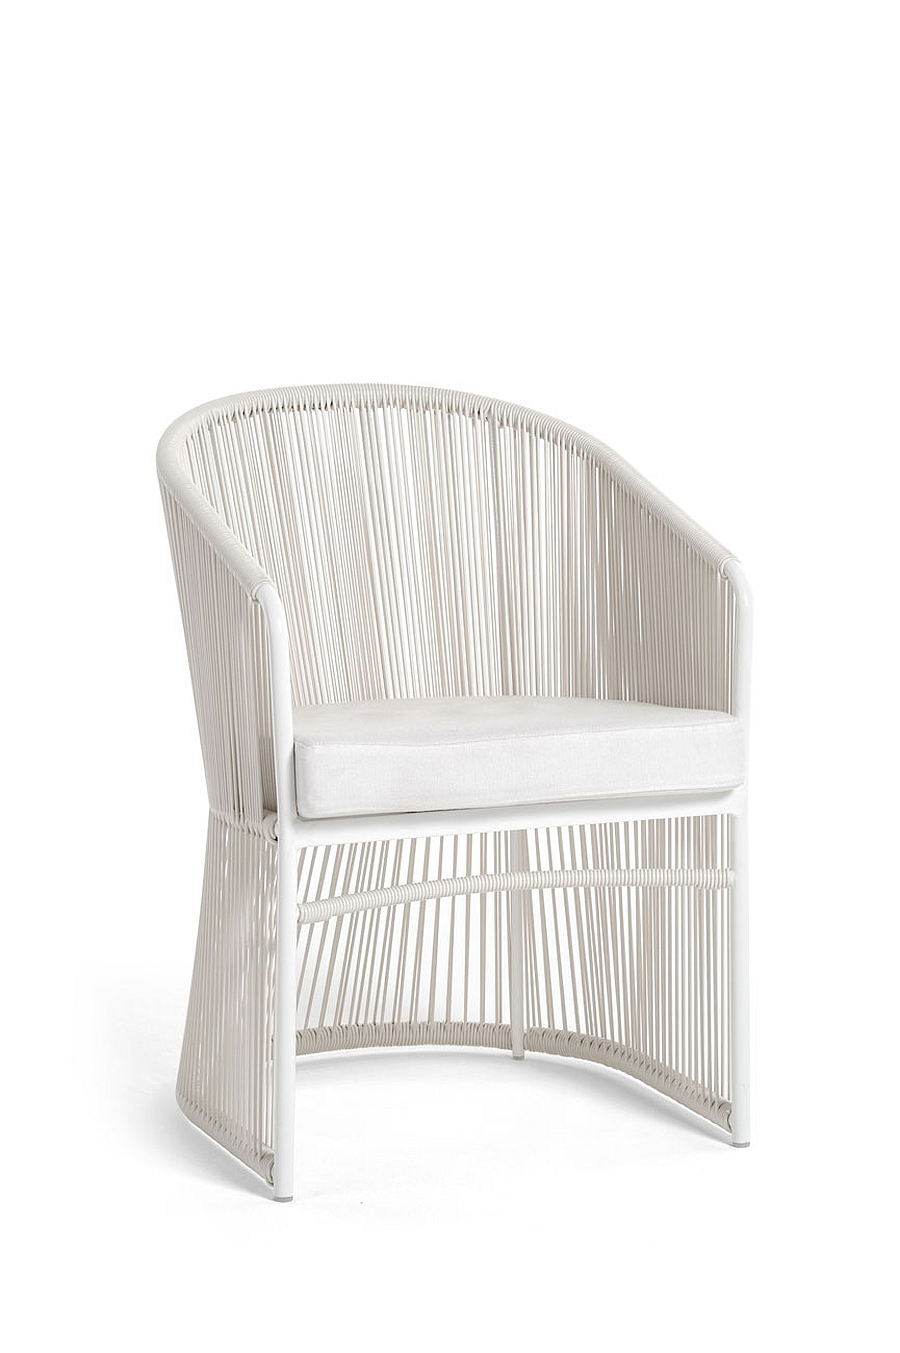 Exquisite outdoor seating in relaxed white is perfect for the summer lounge